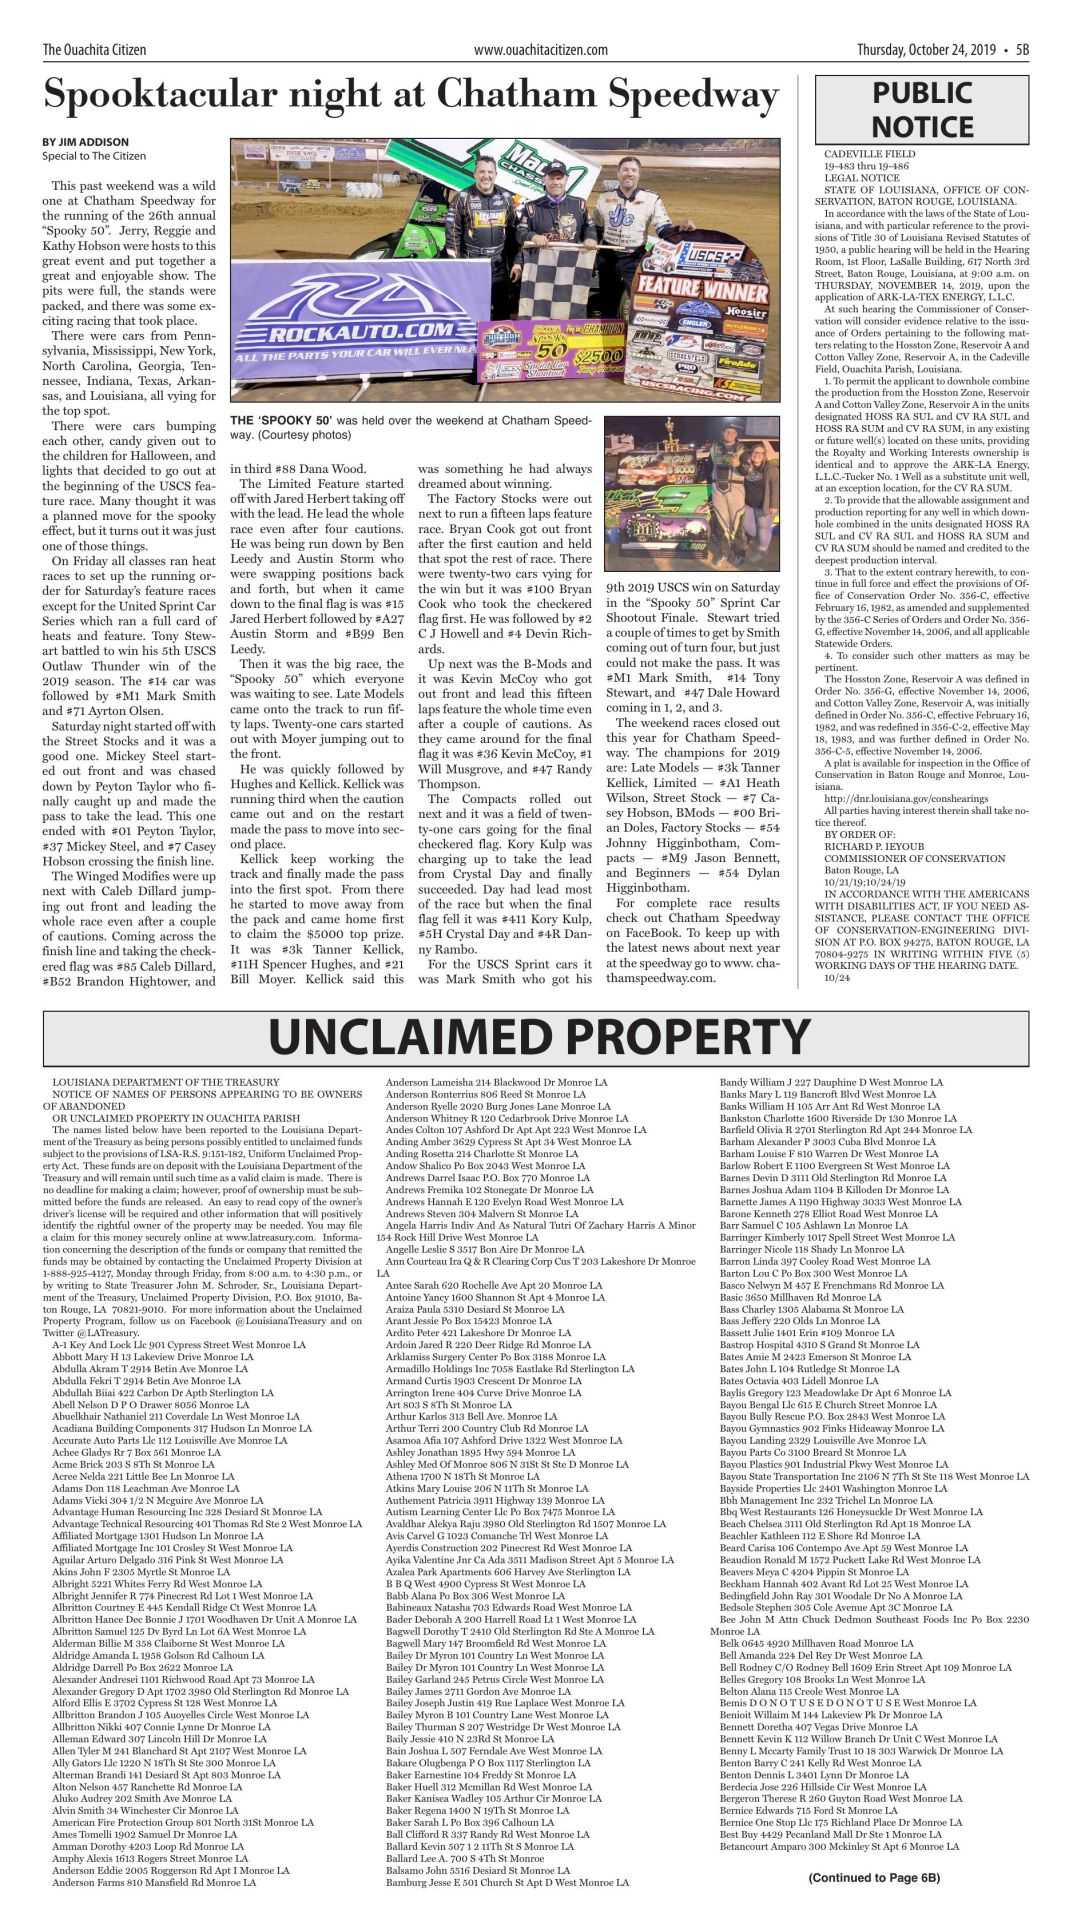 Unclaimed property, Oct. 24, 2019, click to download pages